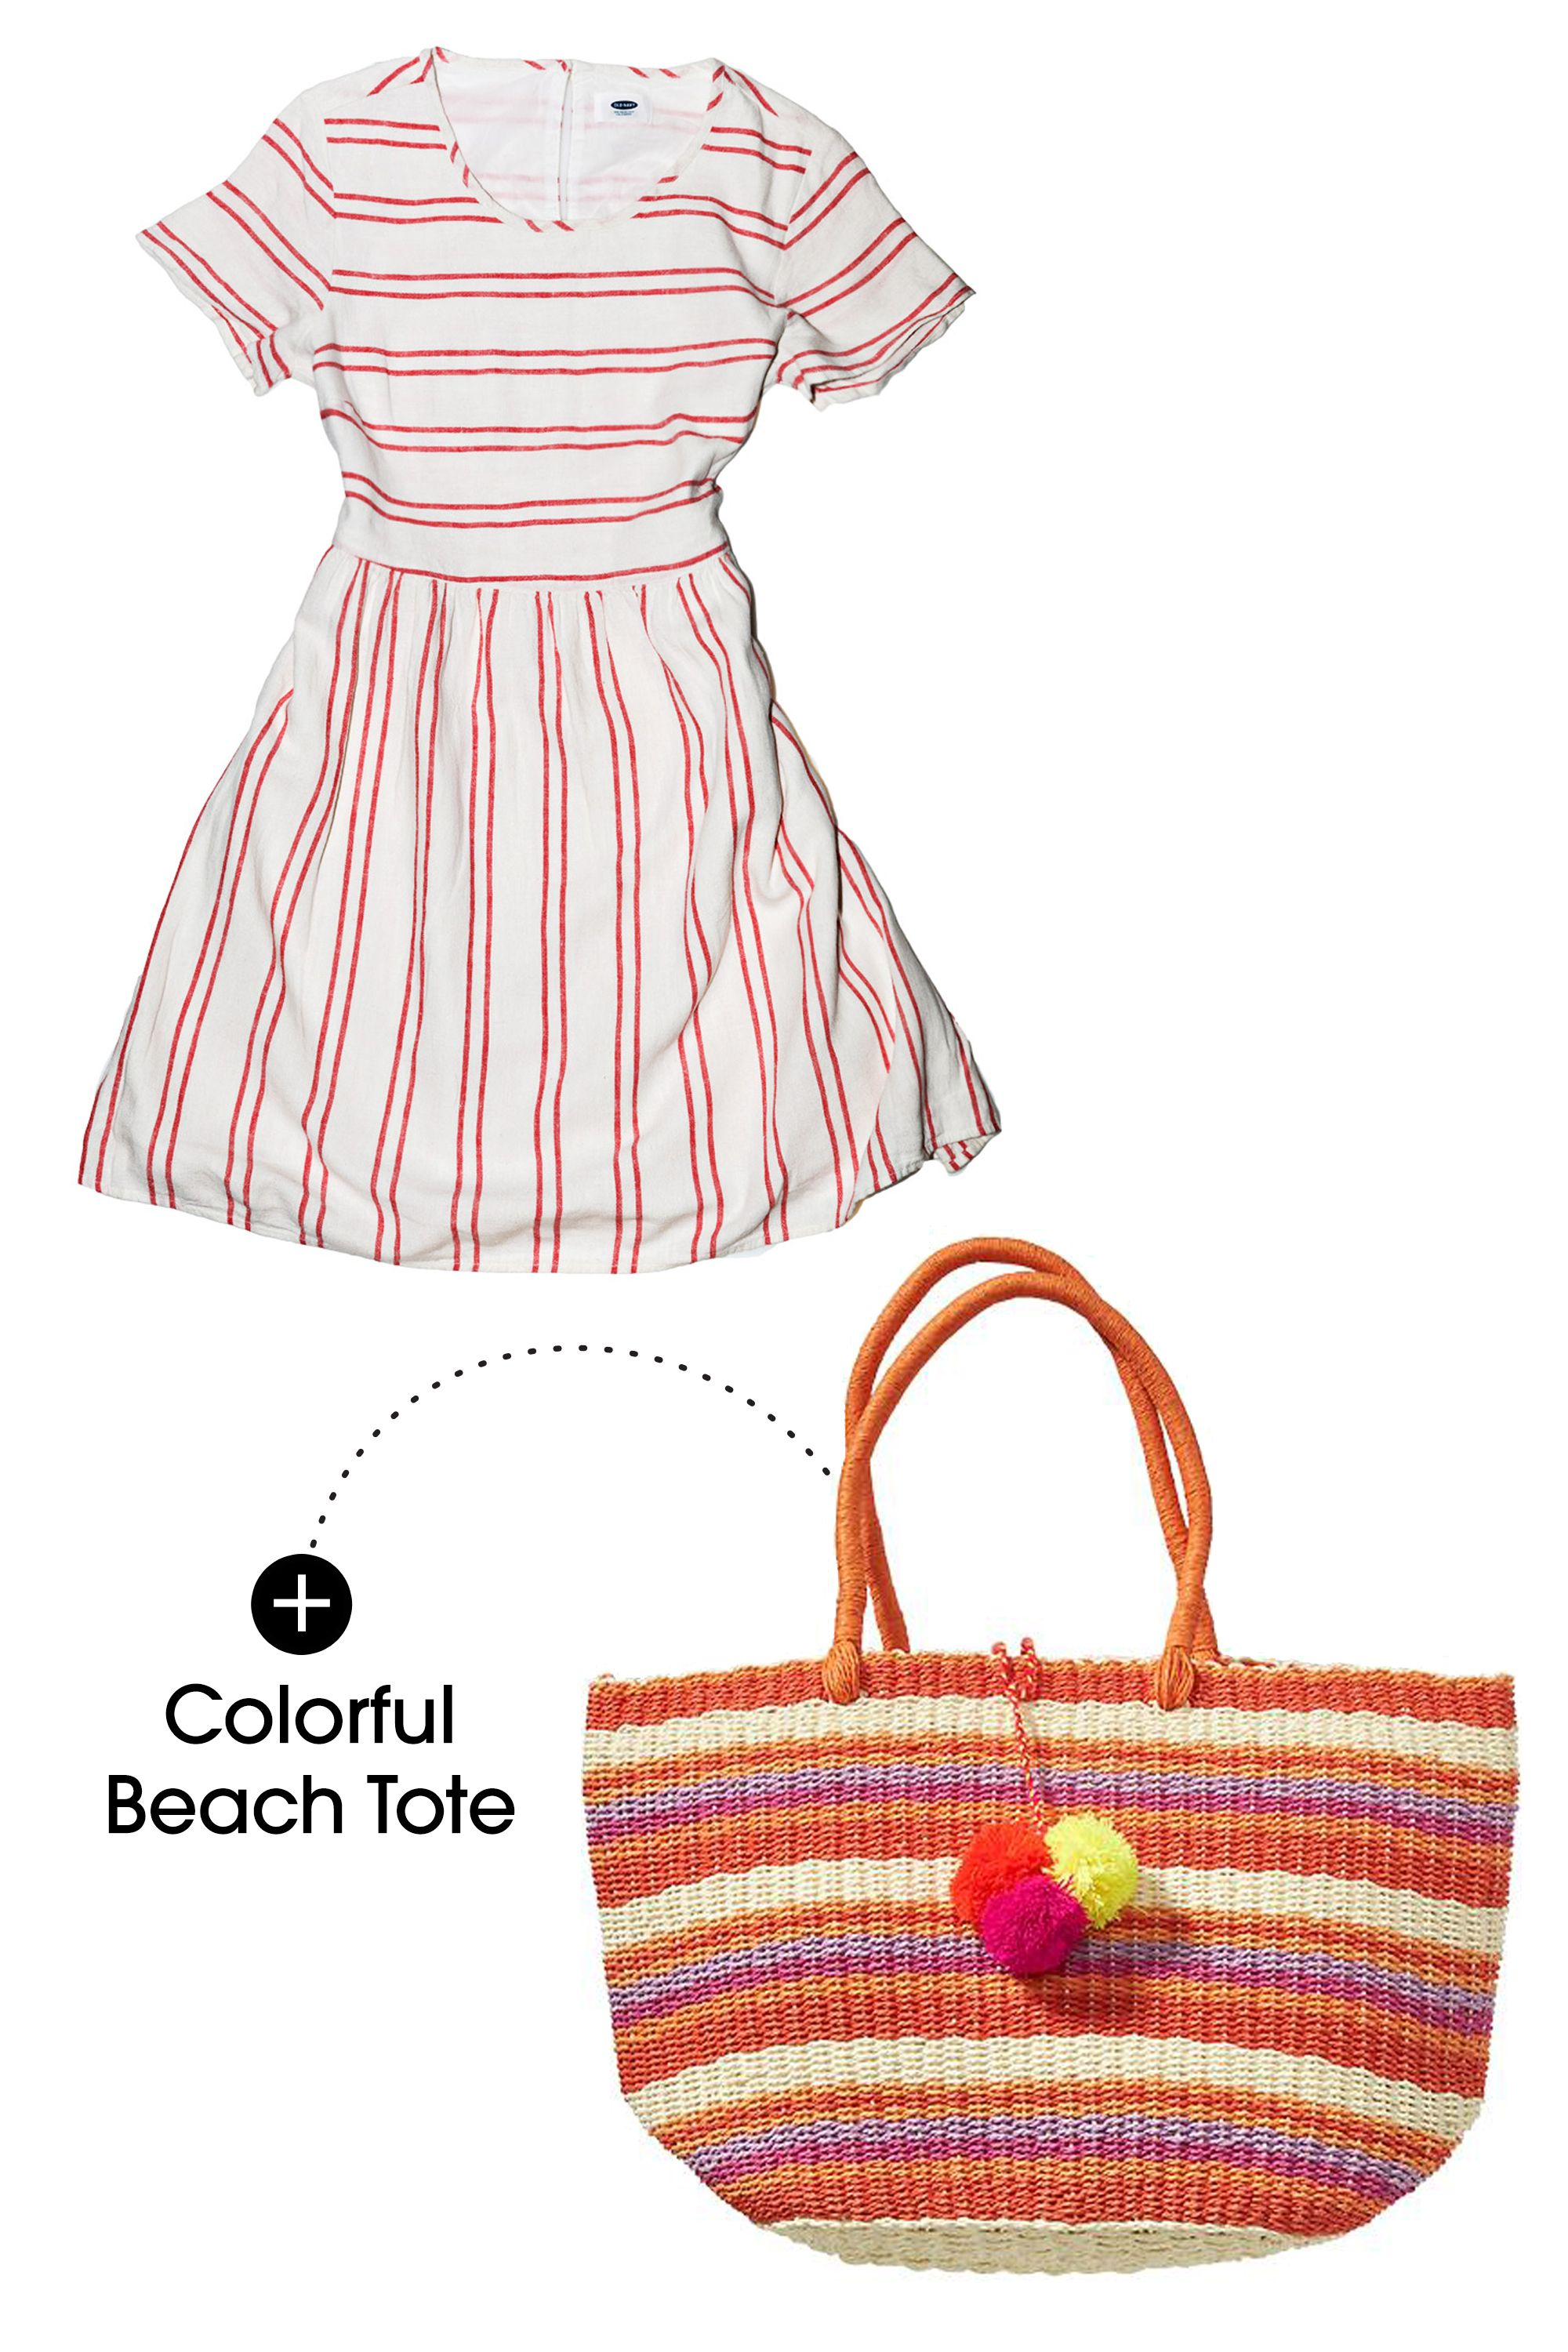 "Mixing different bright colors (like oranges and reds) can be just as easy as mixing stripes. The key is choosing varied textures like here: a linen dress and a straw tote make for an ideal summer brunch outfit.  Old Navy Striped Linen-Blend Dress, $33; <a target=""_blank"" href=""http://oldnavy.gap.com/browse/product.do?cid=91340&vid=1&pid=344614012"">oldnavy.com</a>  Old Navy Straw Tote, $30; <a target=""_blank"" href=""http://oldnavy.gap.com/browse/product.do?cid=7374&vid=1&pid=173191002"">oldnavy.com</a>"